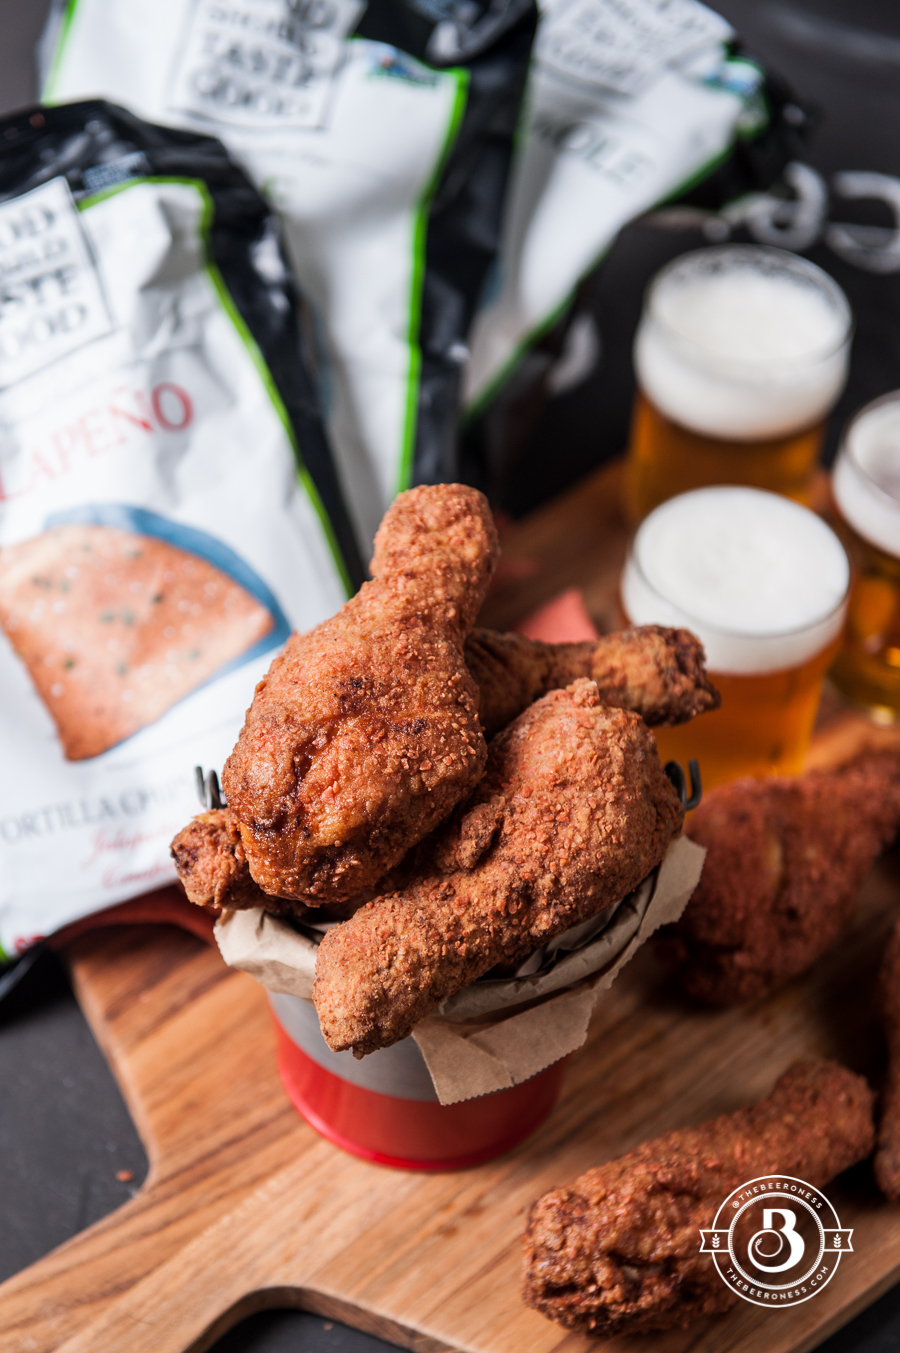 Jalapeno Chip CrustedBeer Brined Fried Chicken5